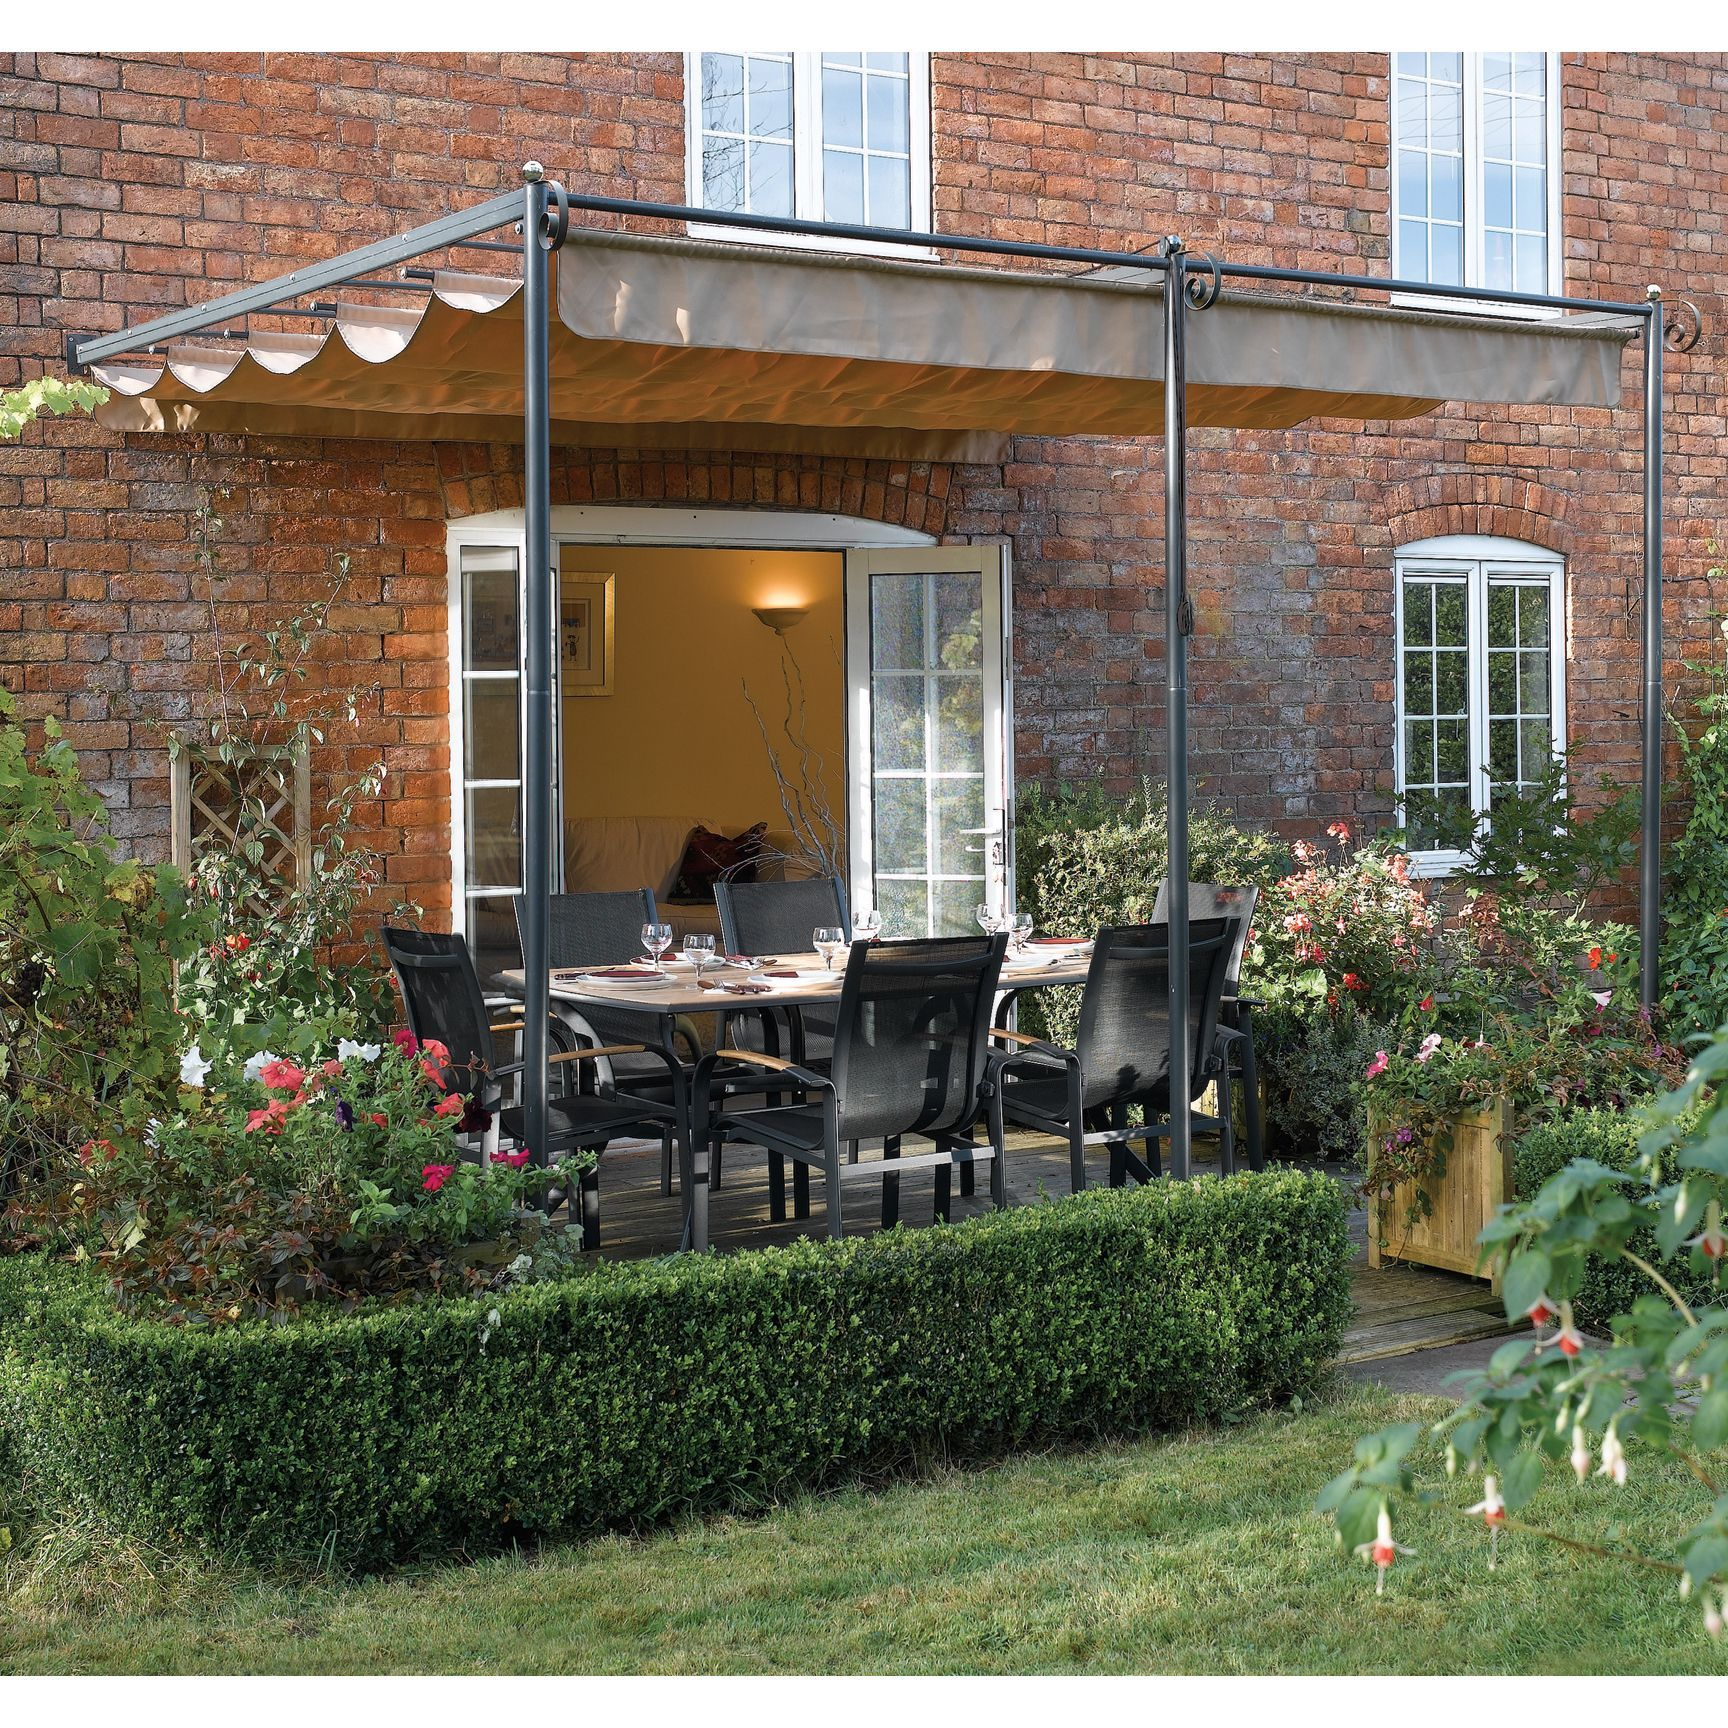 Whether To Provide Shade For Your Dining Table Or Avoid A Sudden